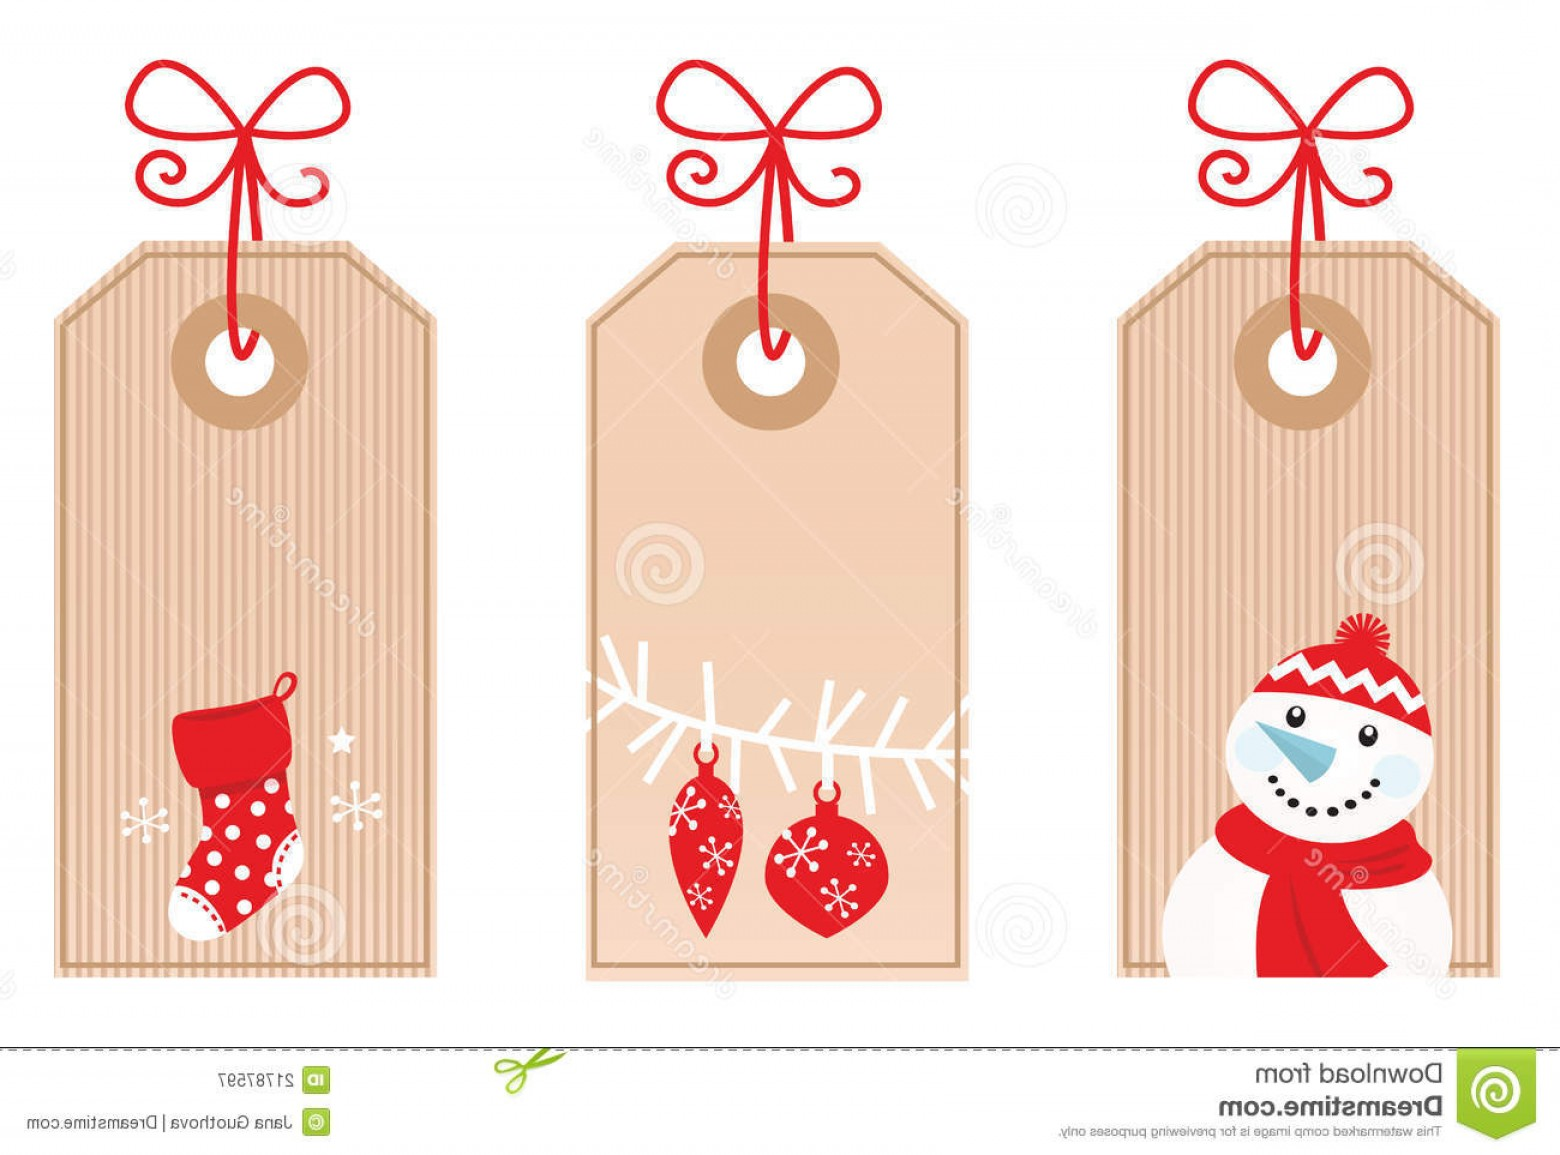 Gift Tags Vector Art: Royalty Free Stock Photography Retro Christmas Gift Tags Red Image